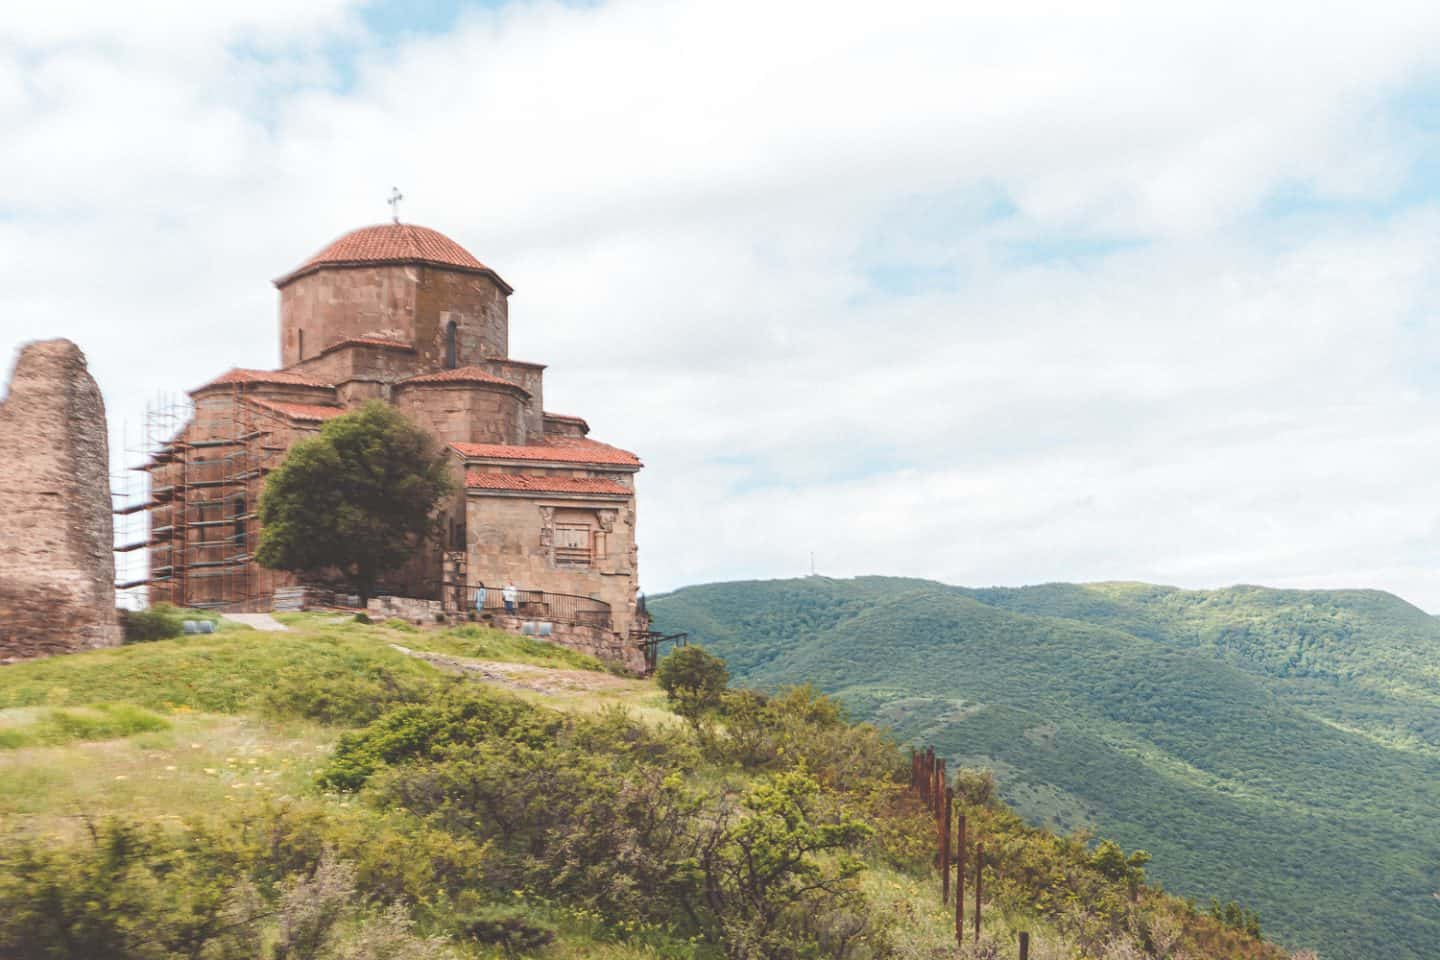 beautiful old monastery up on a green hill